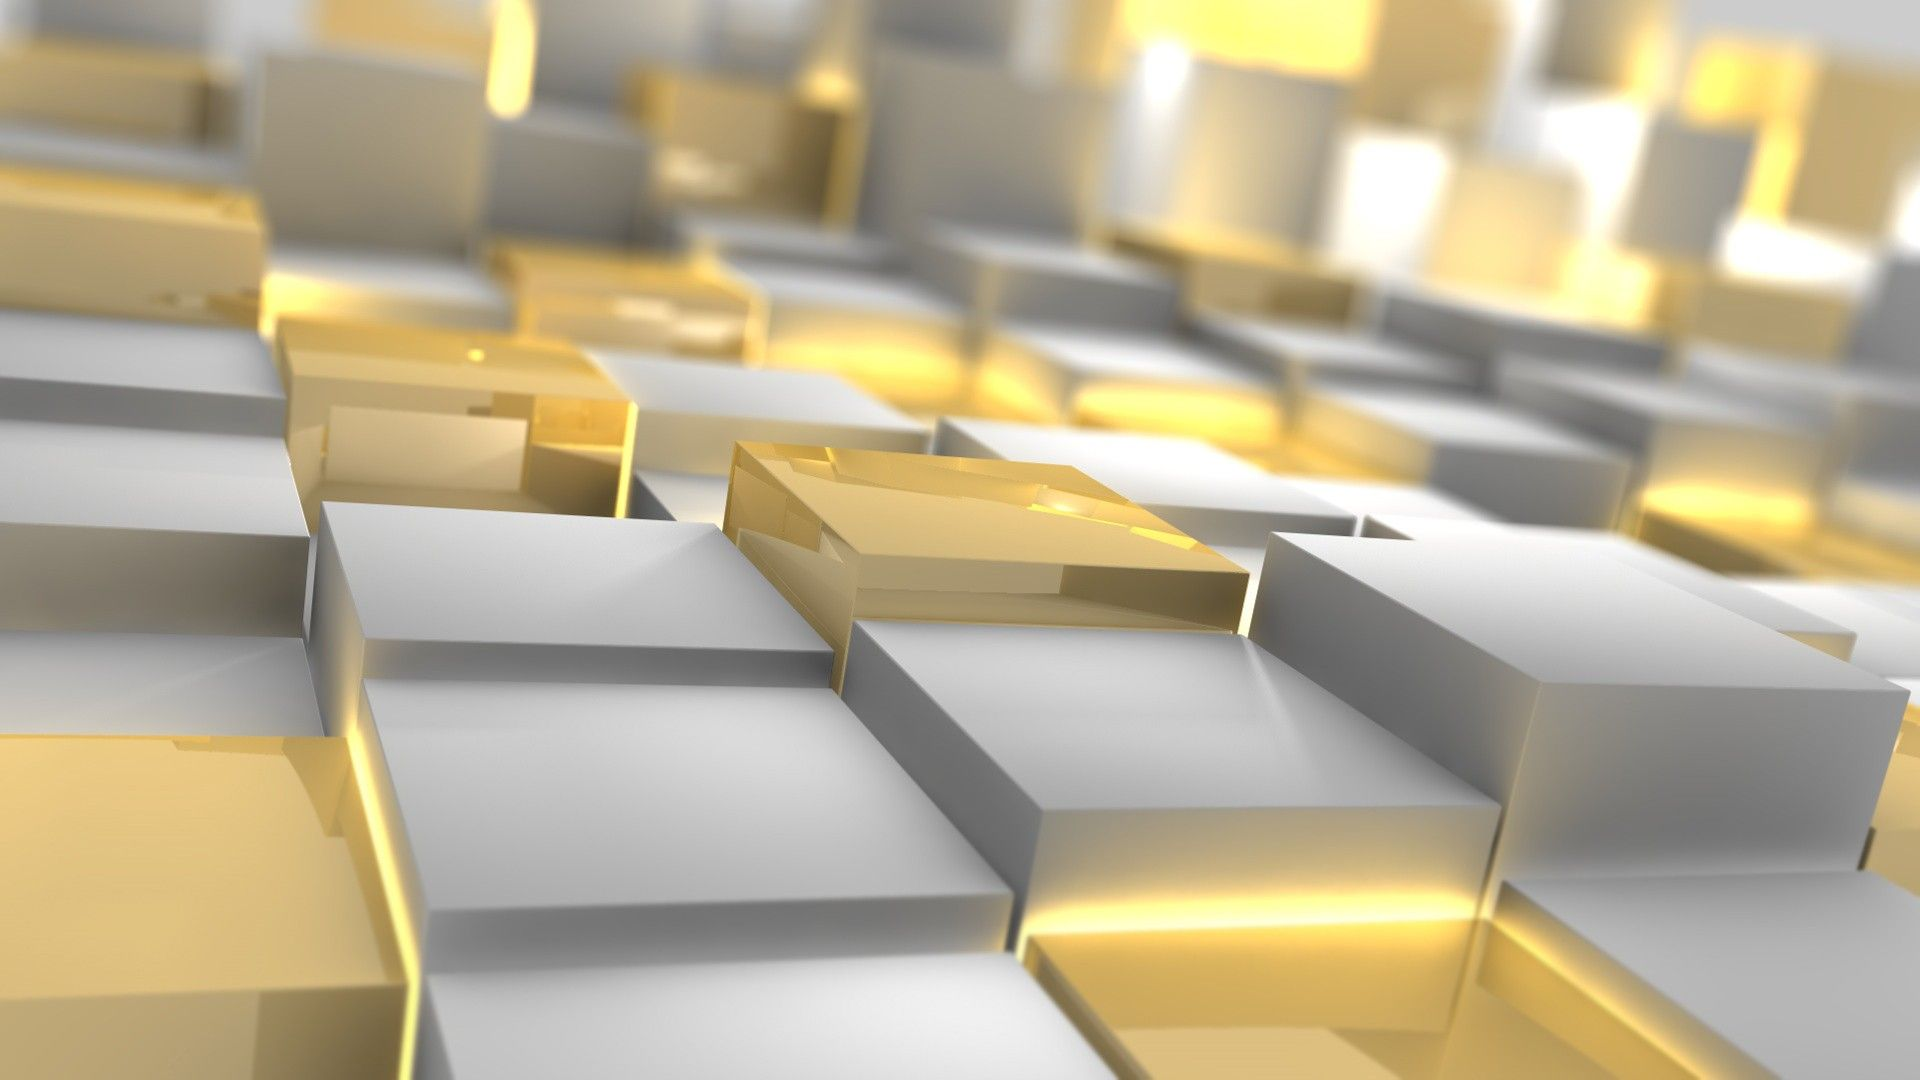 Beautiful Cubes Silver Gold Form Wallpaper Pictures Wallpaper Cube 3d Cube Wallpaper Wallpaper